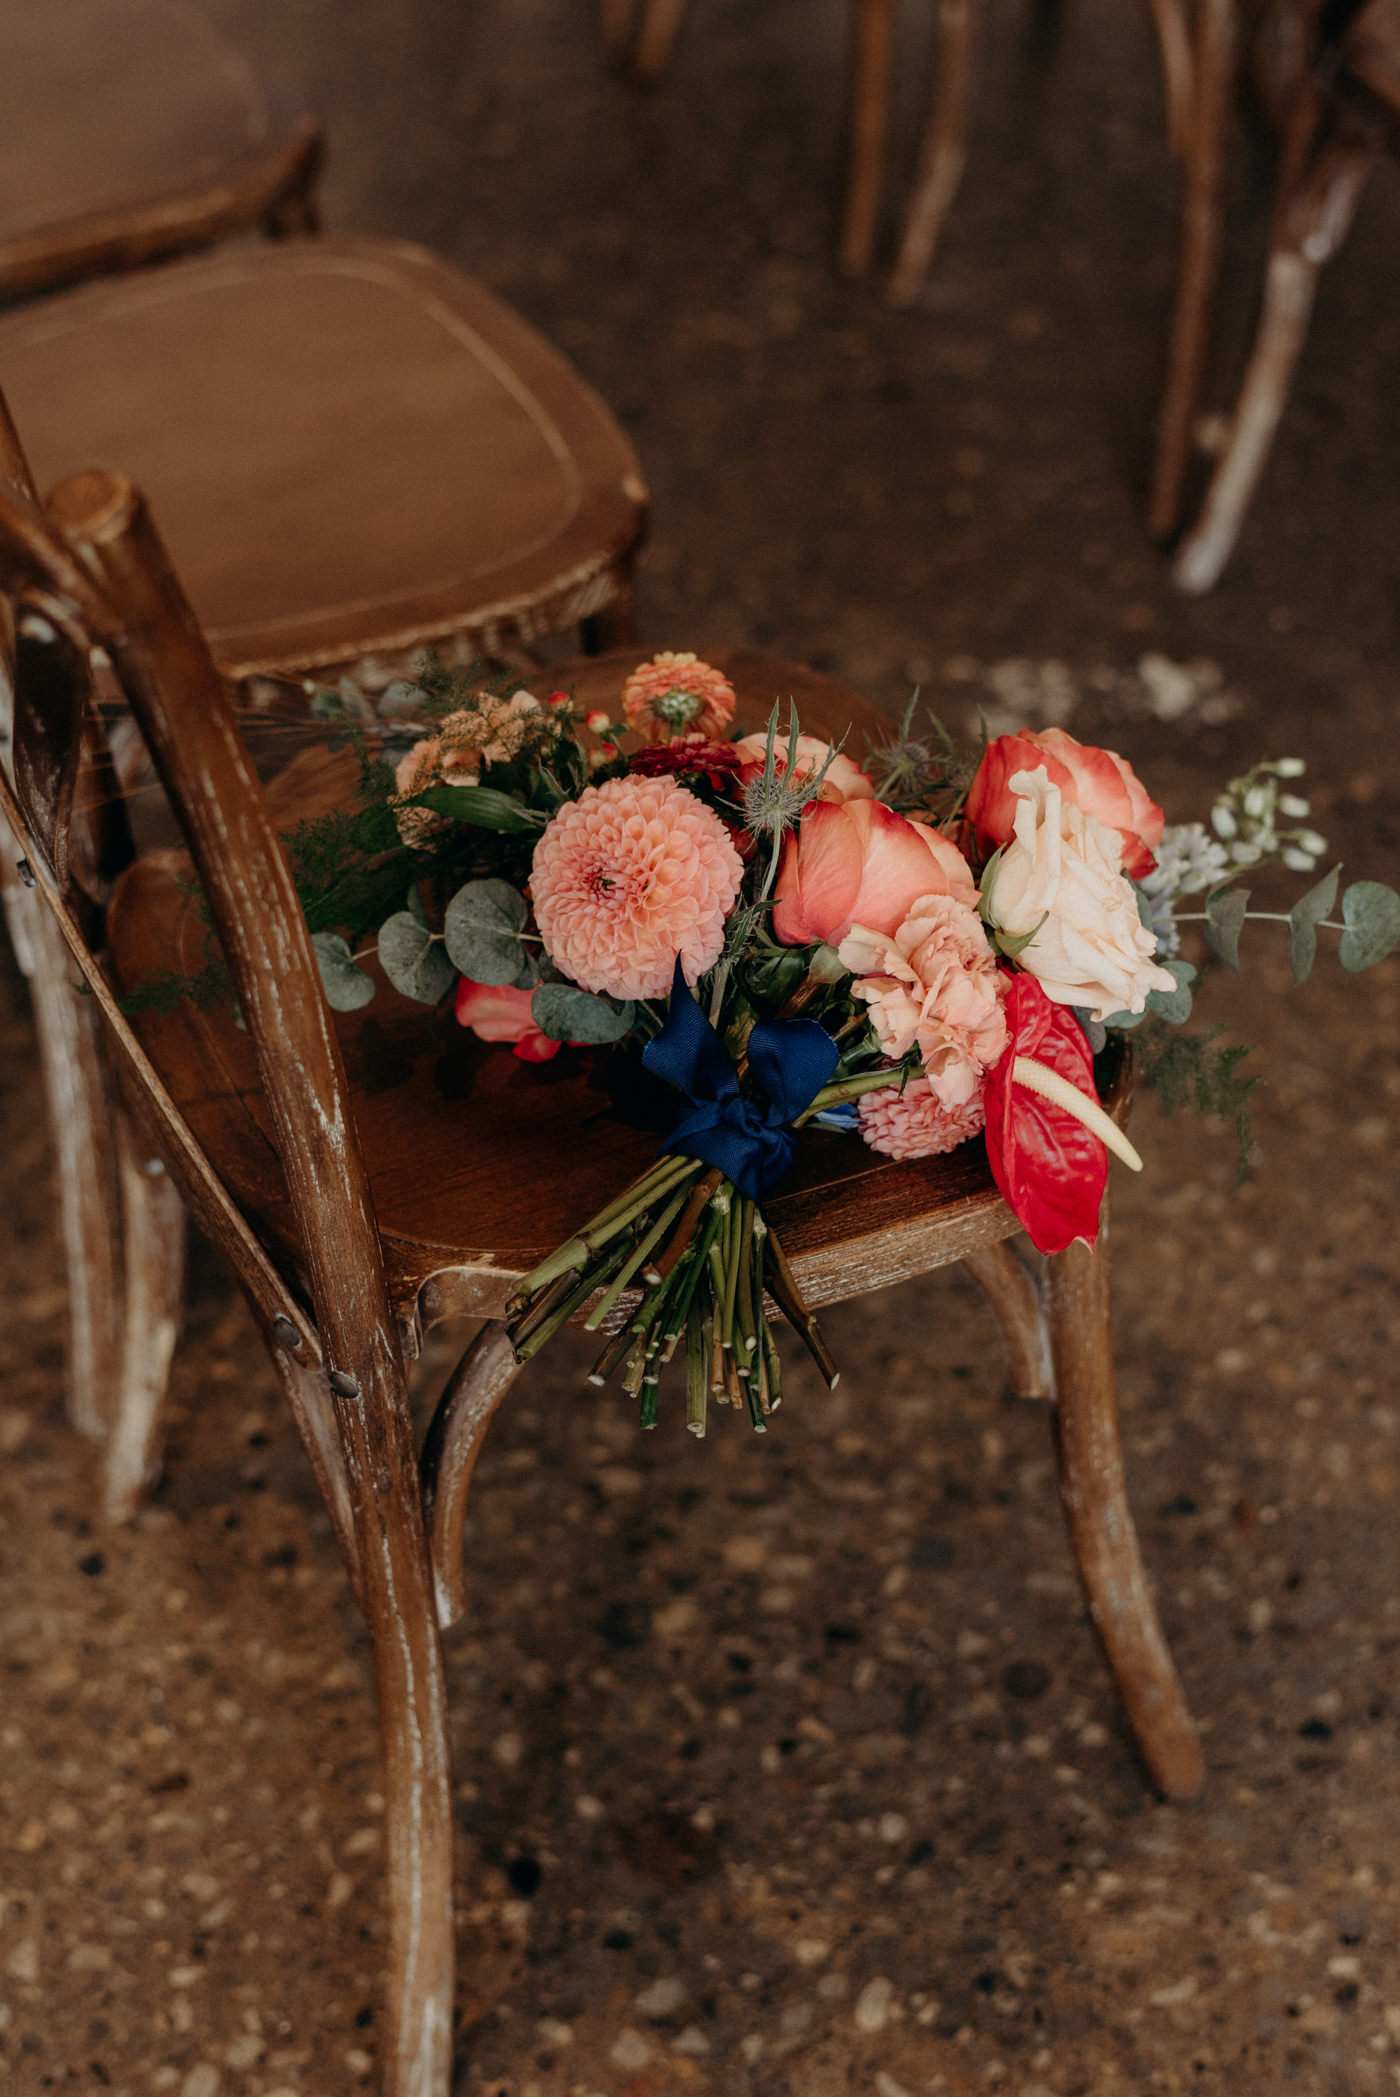 bouquet on wood chair